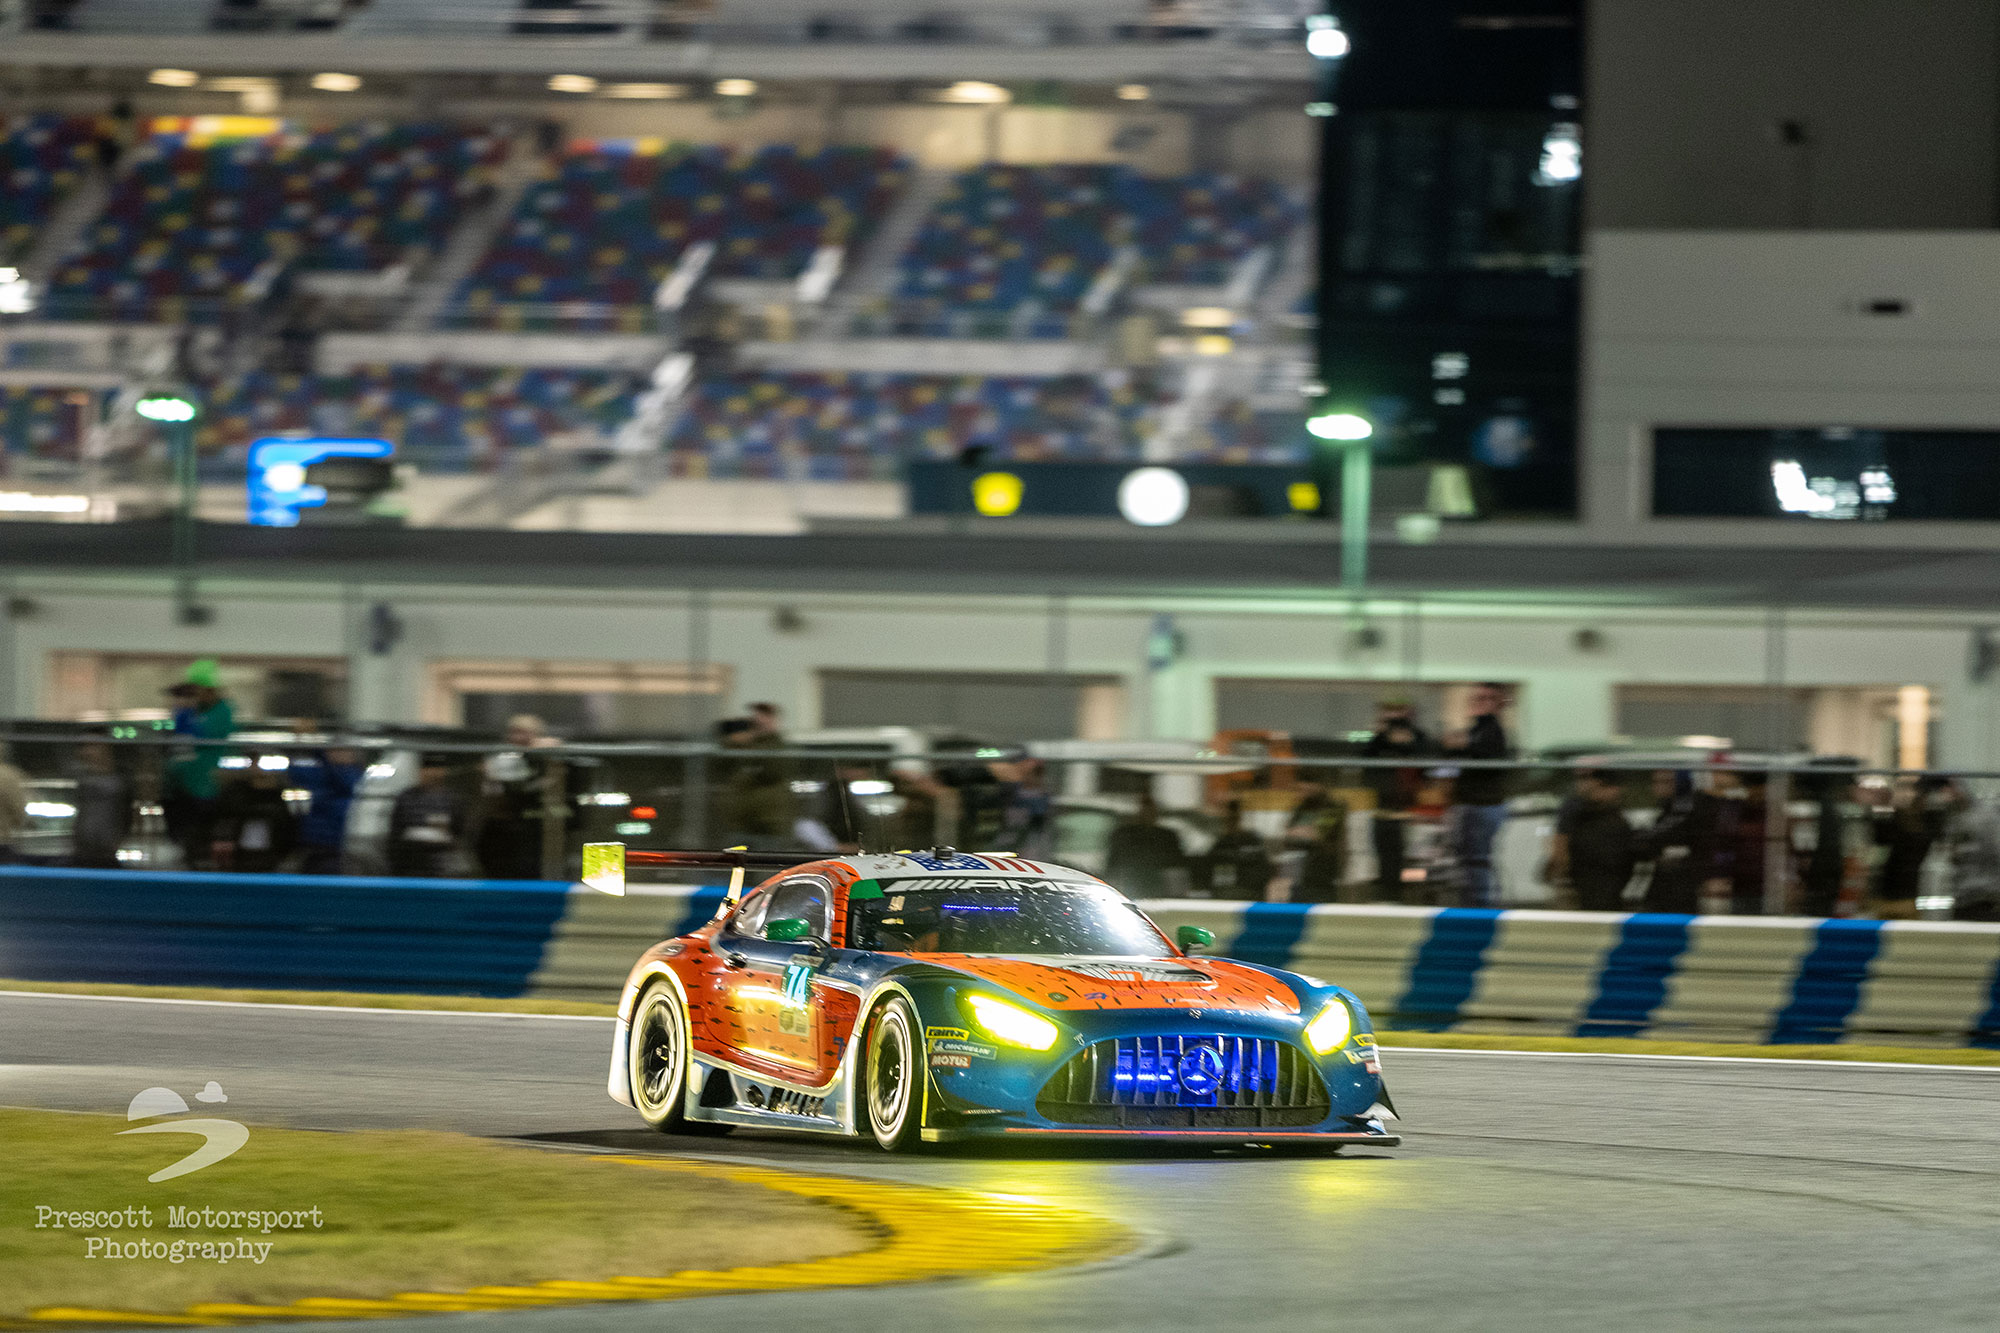 Daytona 24 Motorsport Photography